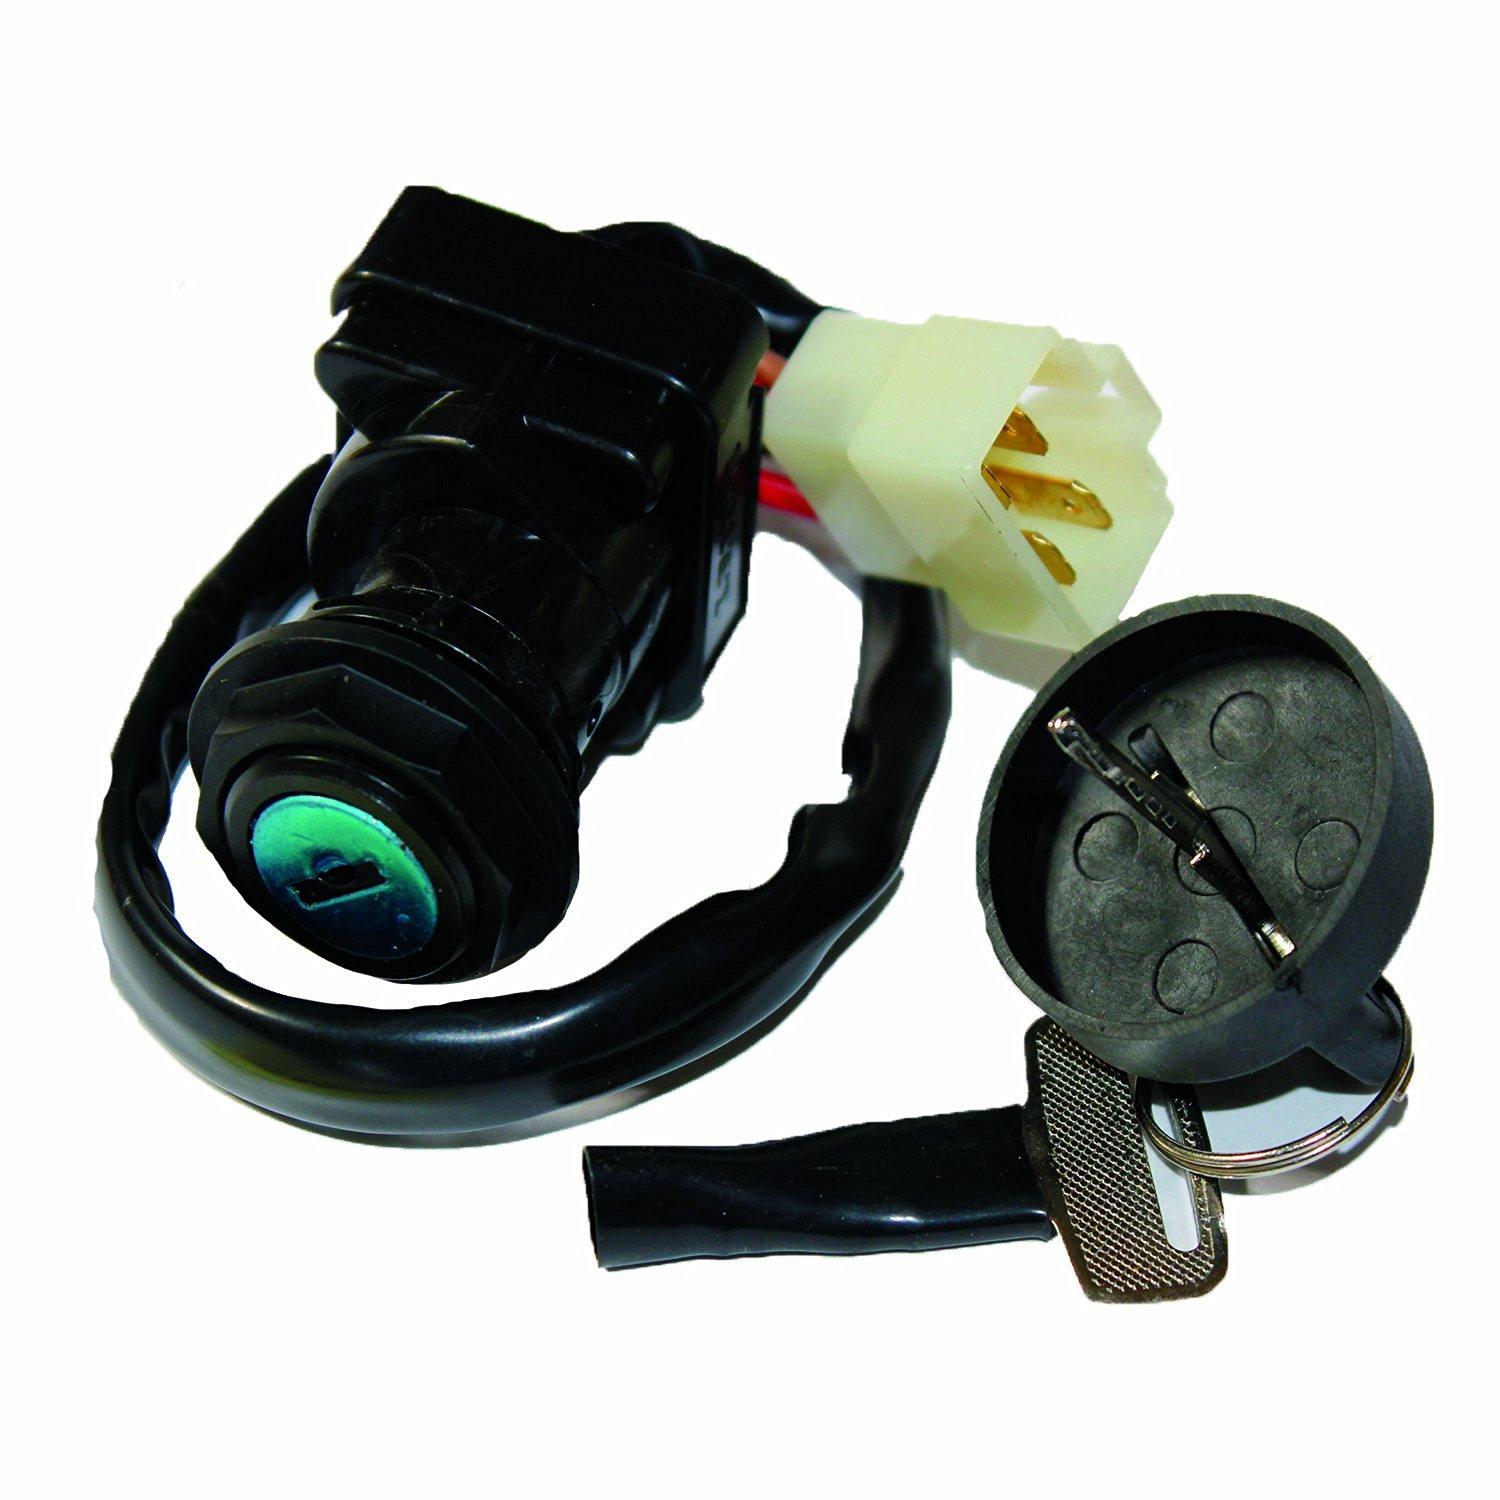 Buy Caltric IGNITION KEY SWITCH Fits POLARIS SCRAMBLER 400